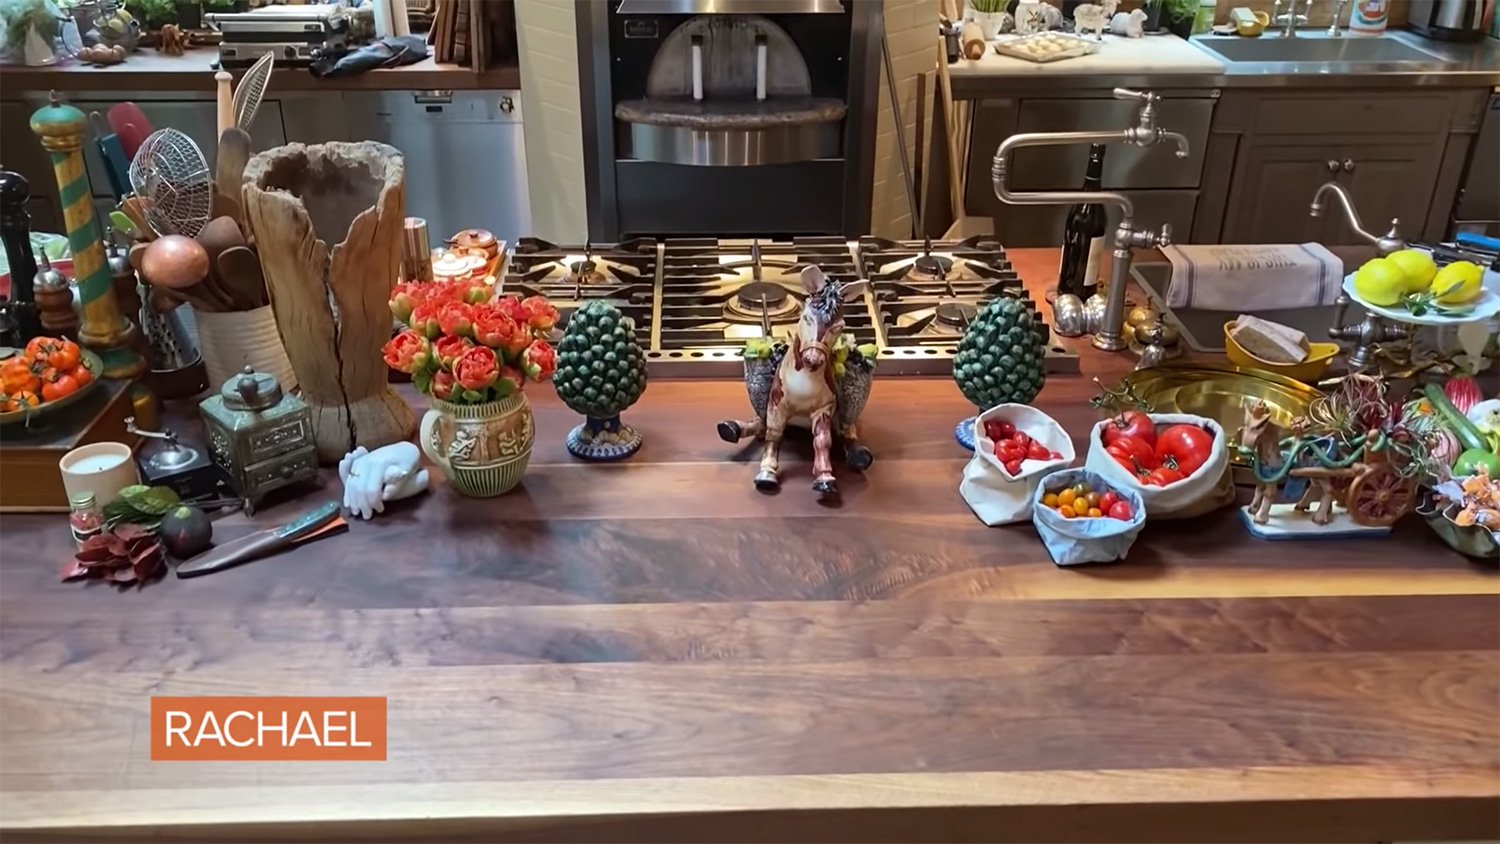 A Closer Look At Rachael's Home Kitchen AND Pantry In Upstate New York